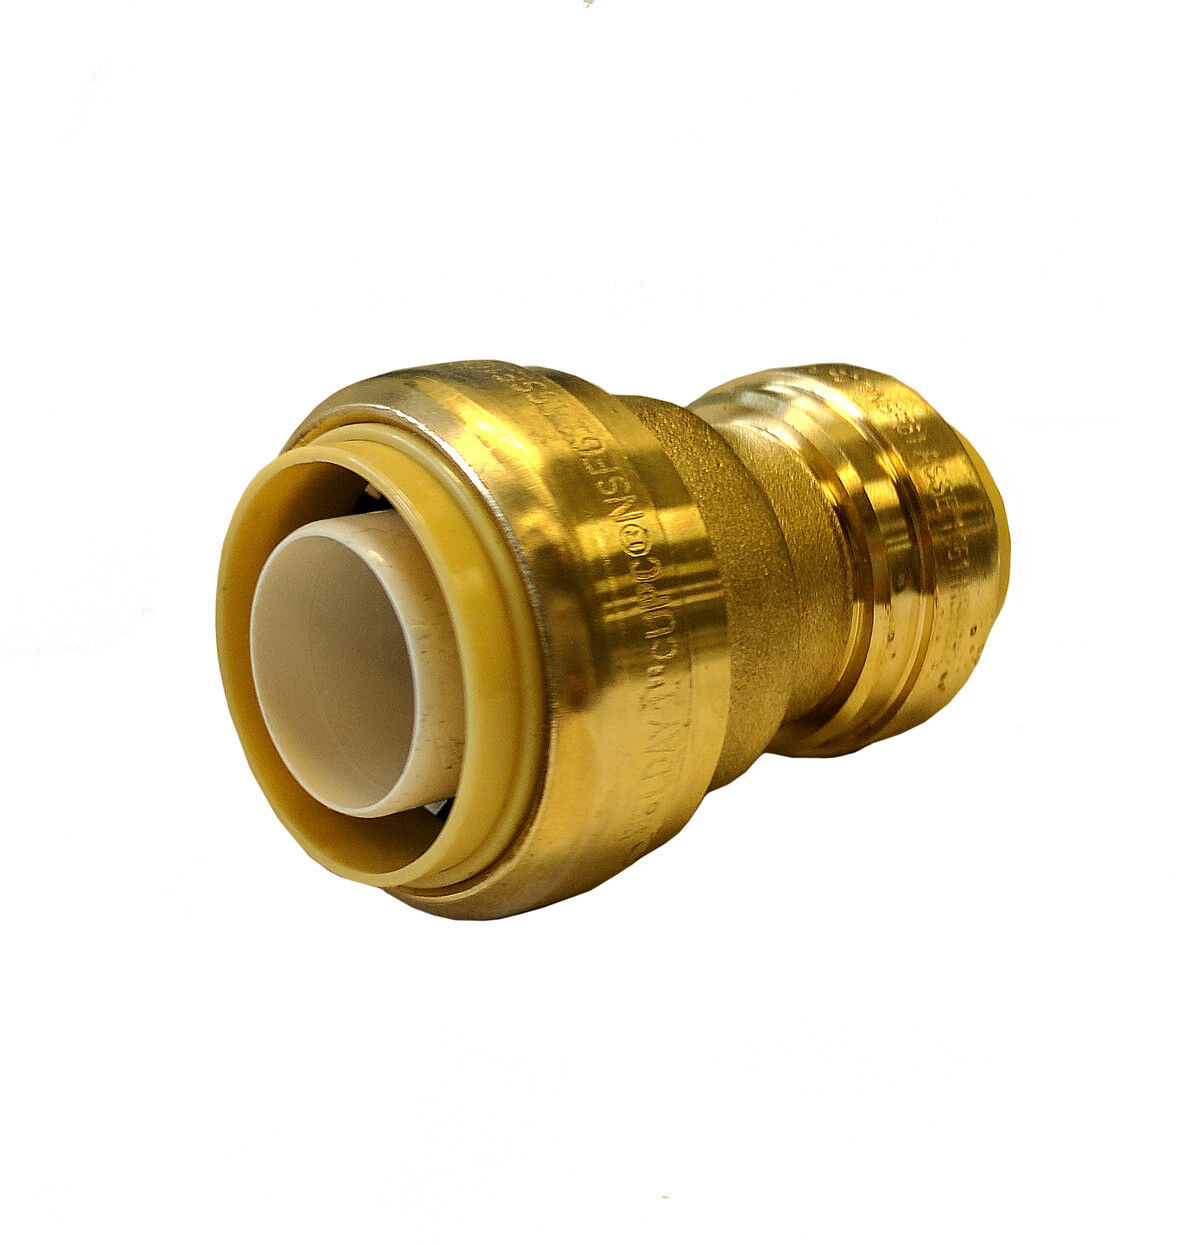 Libra Supply 3/4 X 1/2 Inch Push-fit Brass Coupling Push to ...